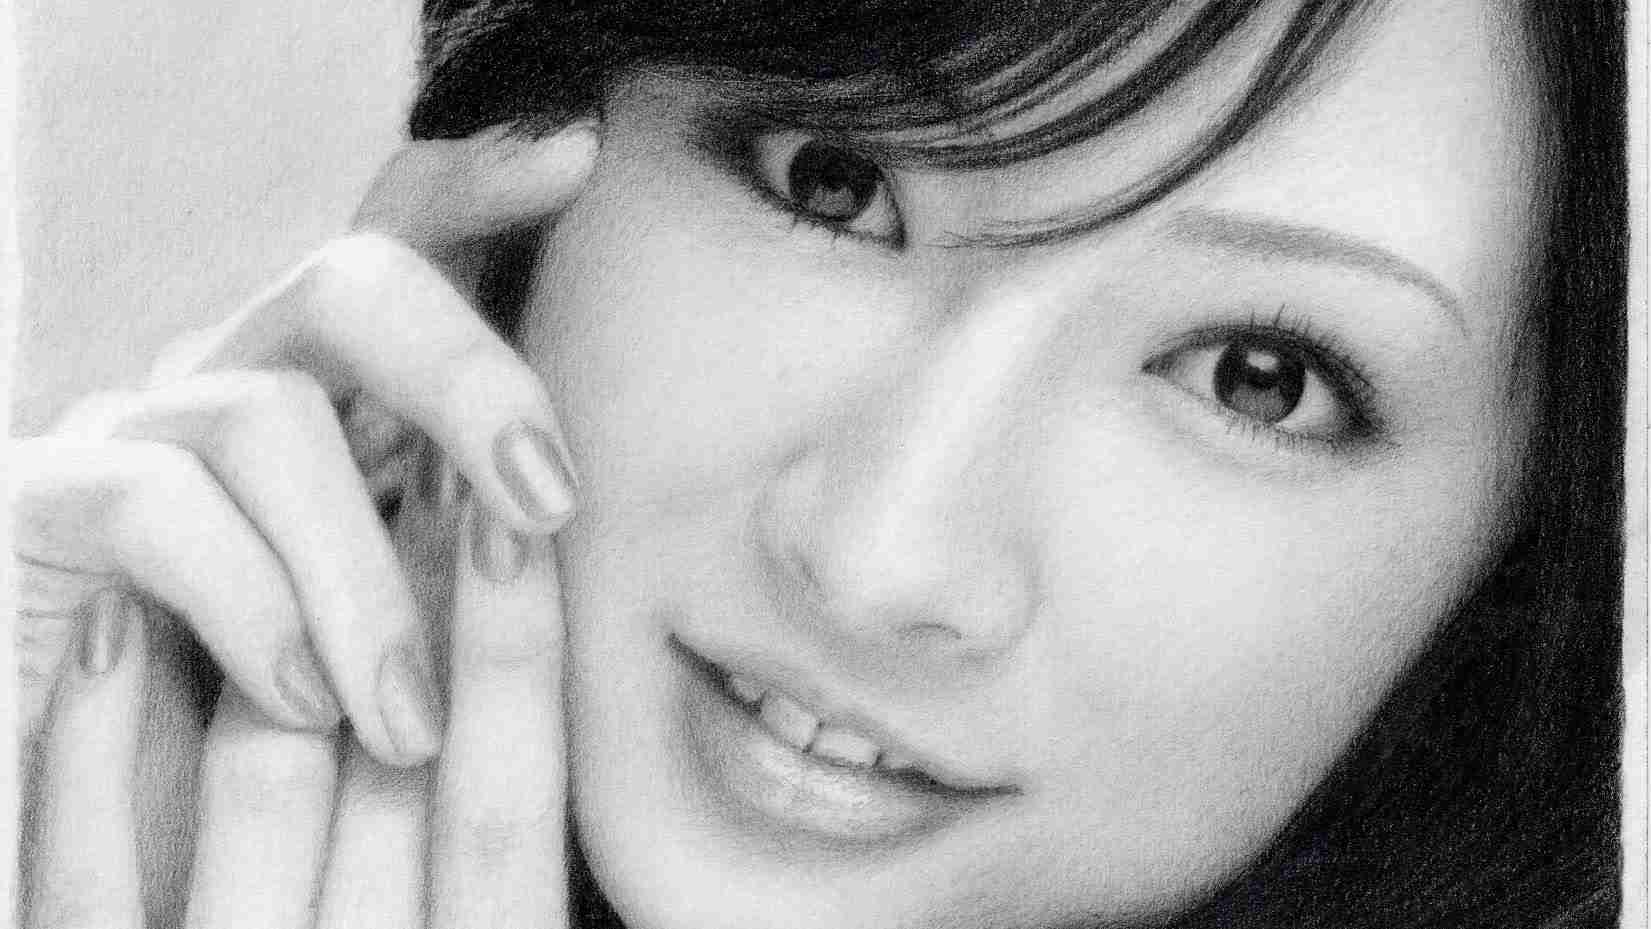 鉛筆画 北川景子 完成までの一部始終 動画 早送り / Keiko Kitagawa / Pencil drawing / How To Draw a Realistic Picture. - YouTube